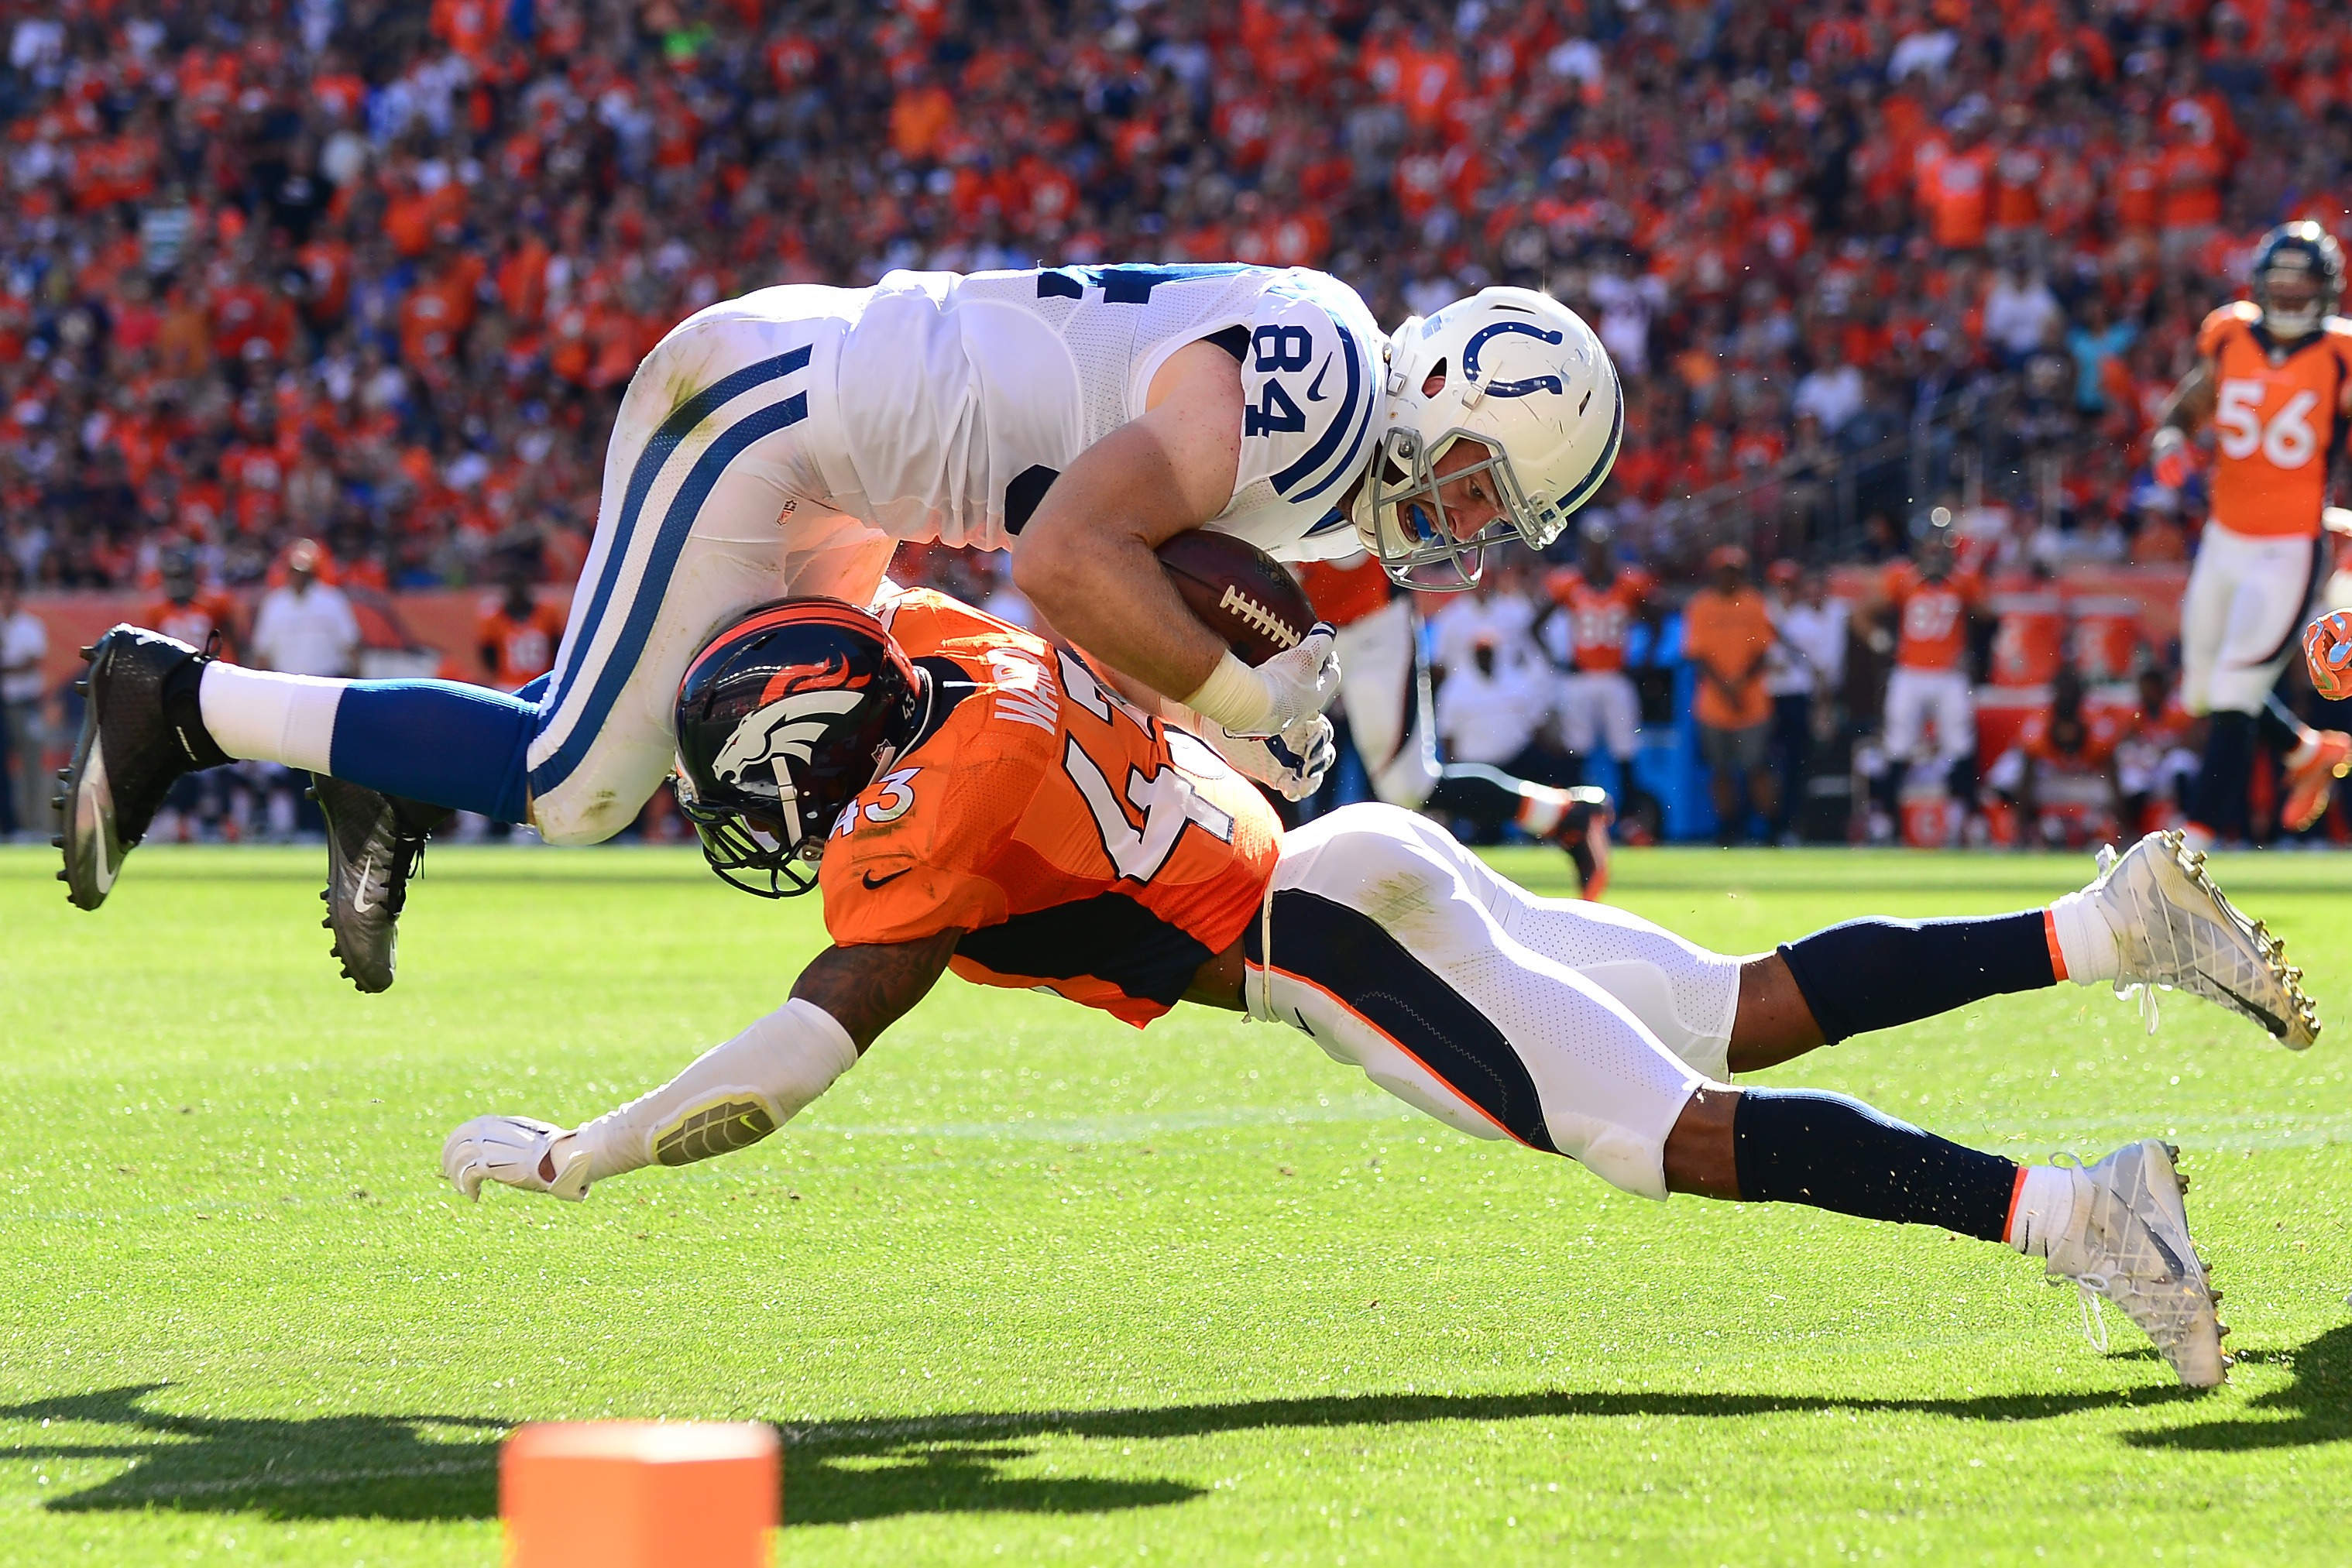 Strong safety T.J. Ward #43 of the Denver Broncos tackles tight end Jack Doyle #84 of the Indianapolis Colts in the red zone in the third quarter of the game at Sports Authority Field at Mile High on September 18, 2016 in Denver, Colorado. (Photo by Dustin Bradford/Getty Images)